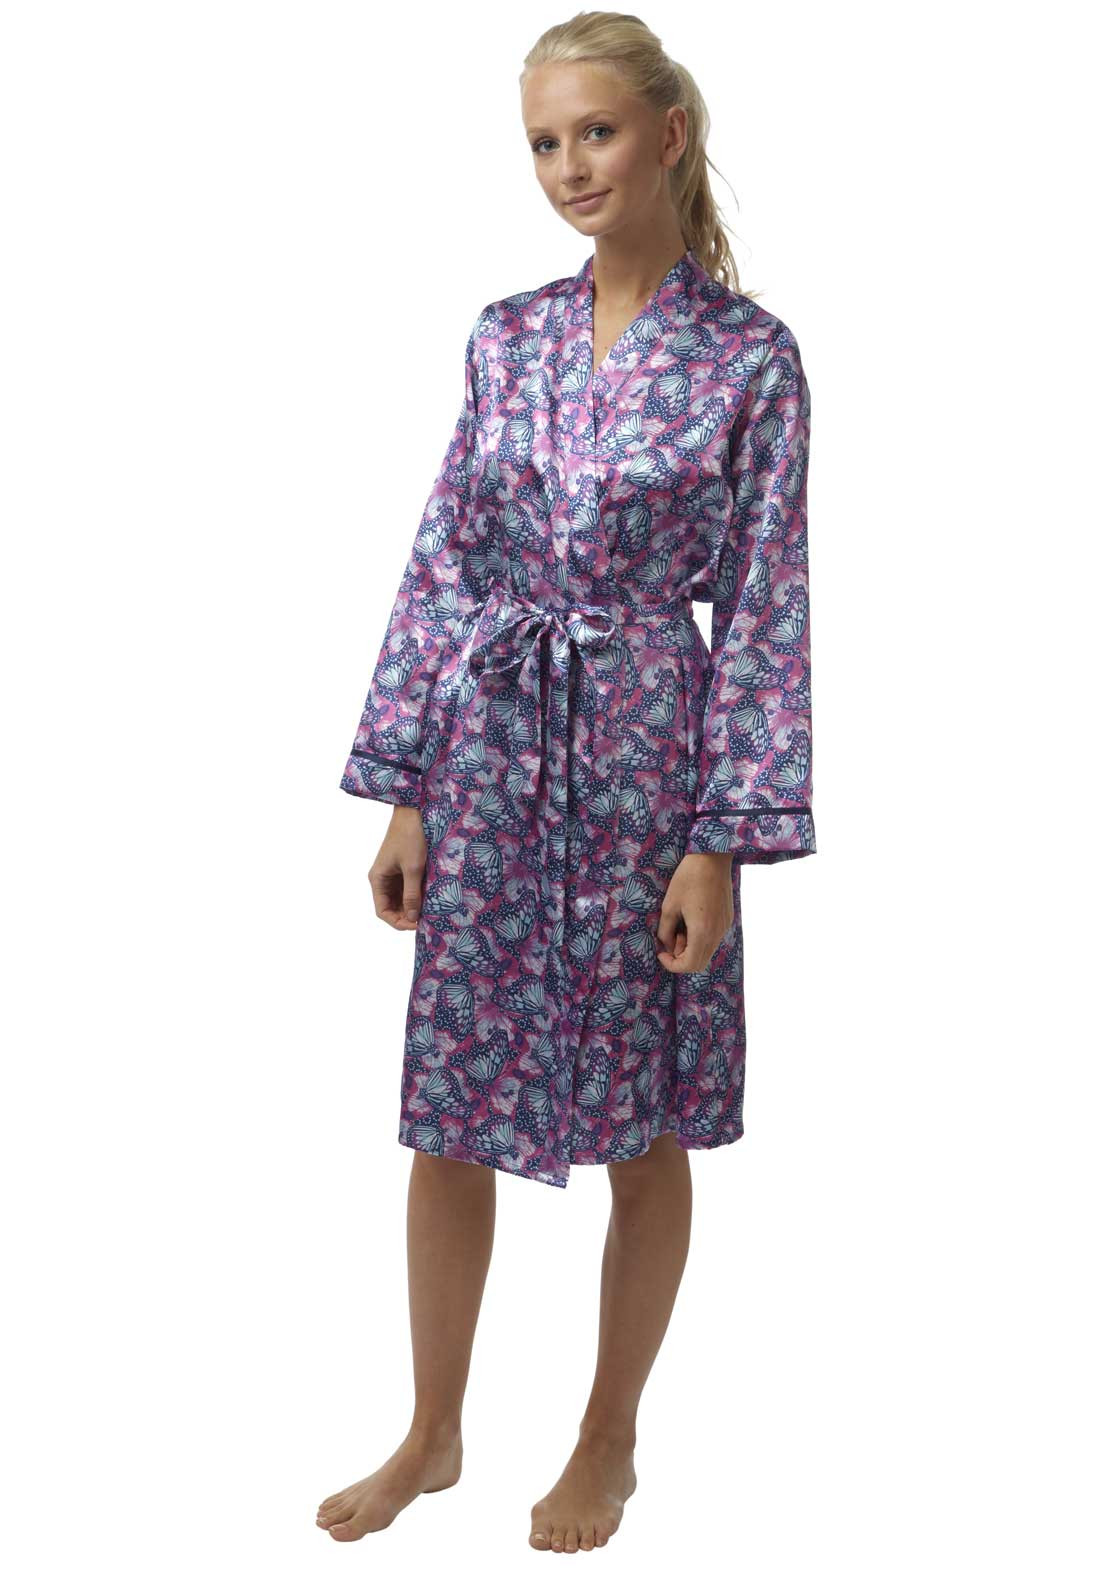 Indigo Sky Butterfly Print Dressing Gown, Multi-Coloured